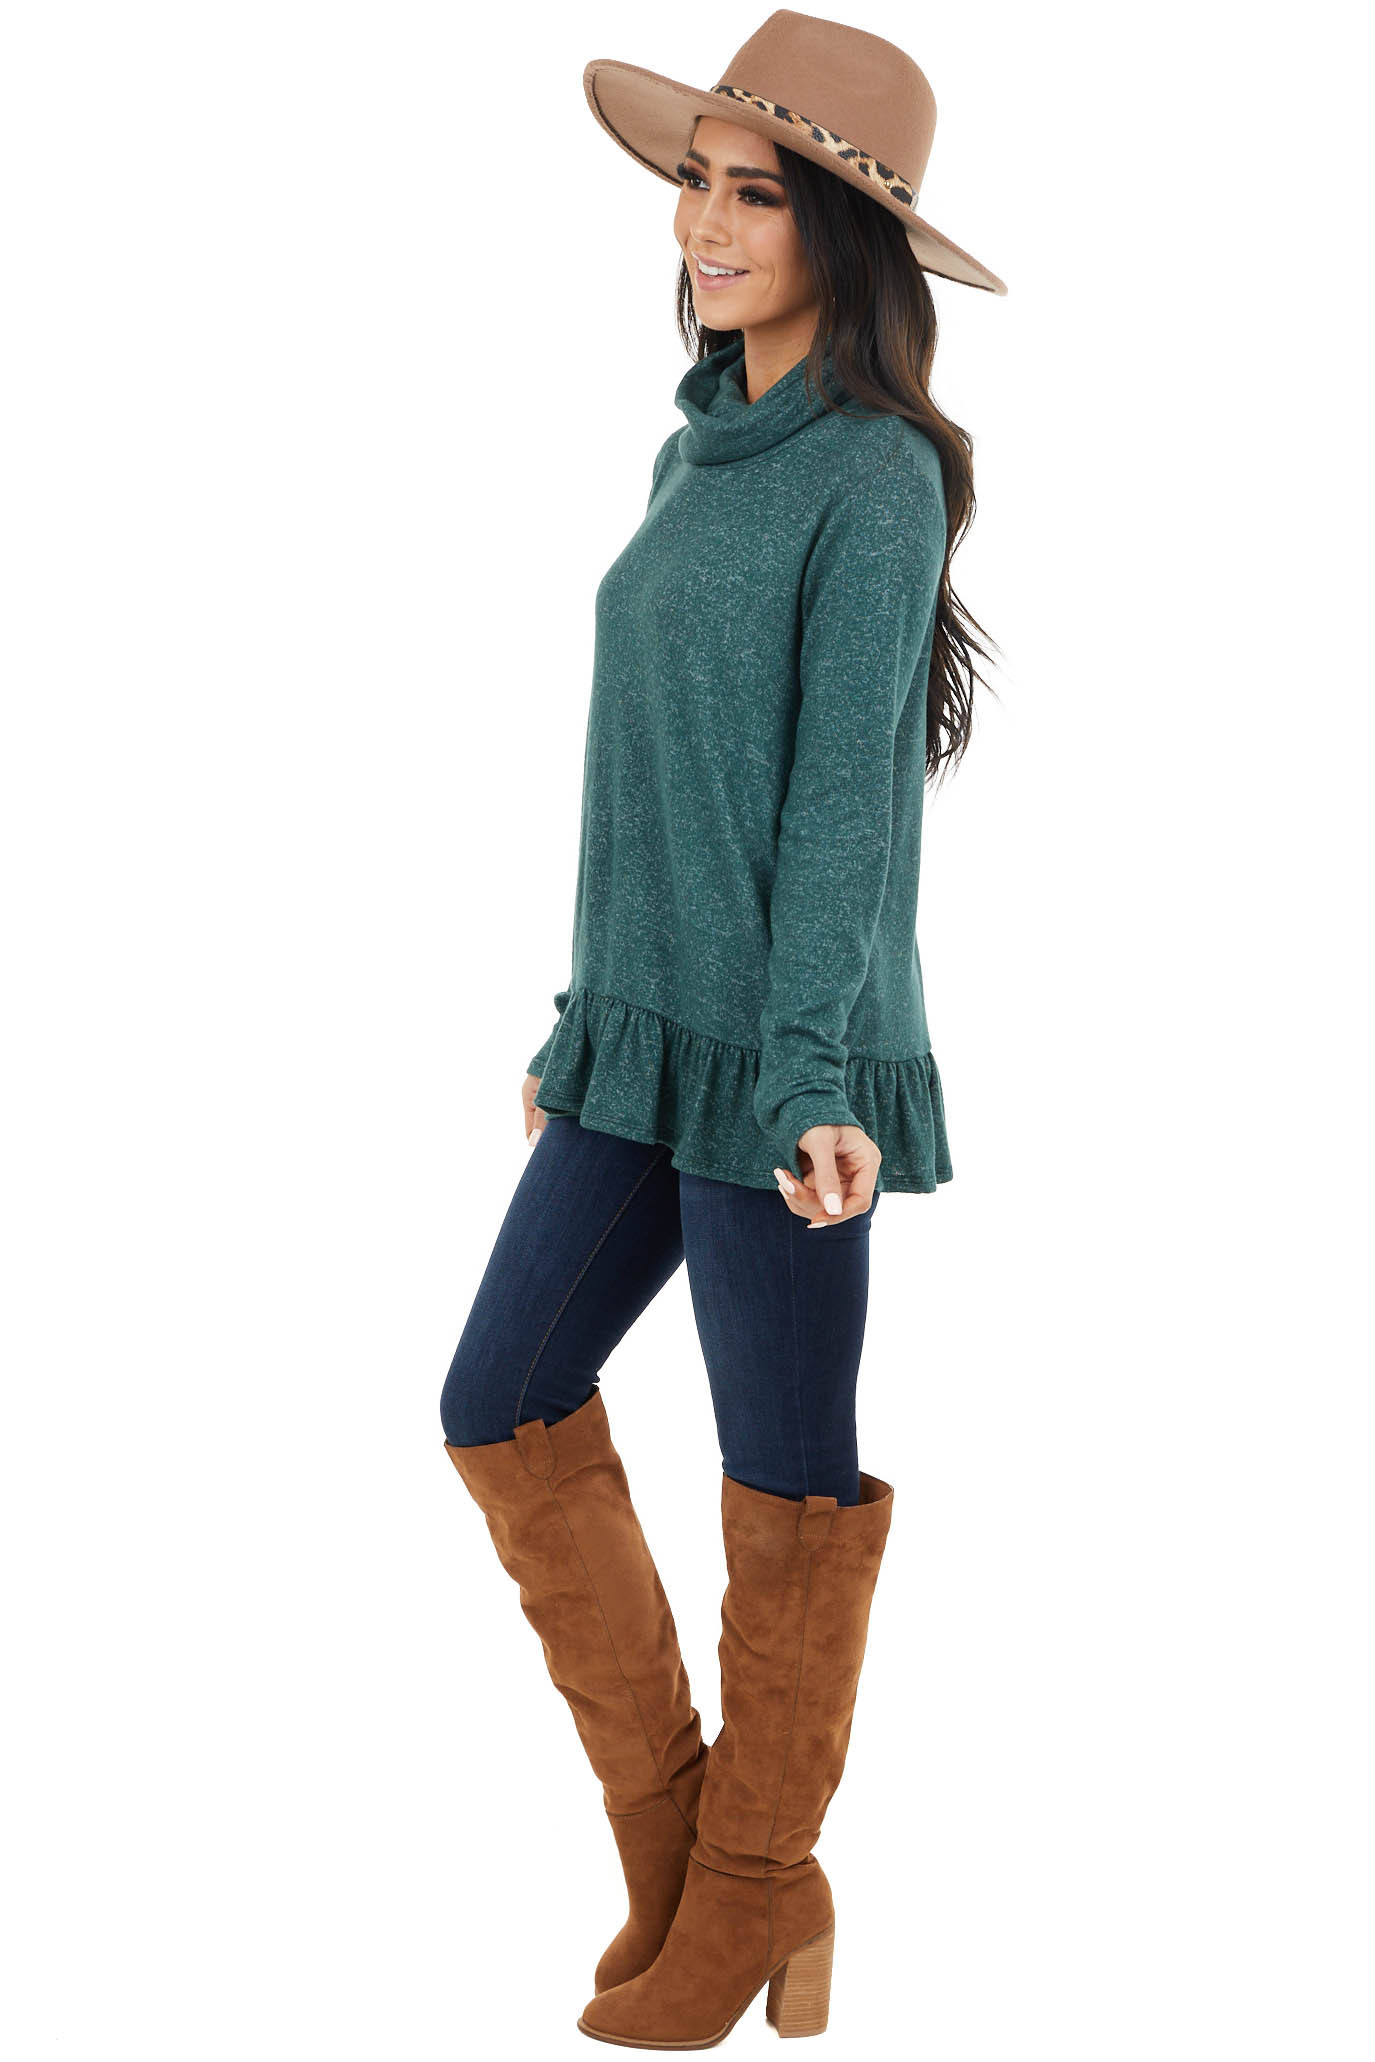 Pine Green Two Tone Cowl Neck Top with Ruffle Hem